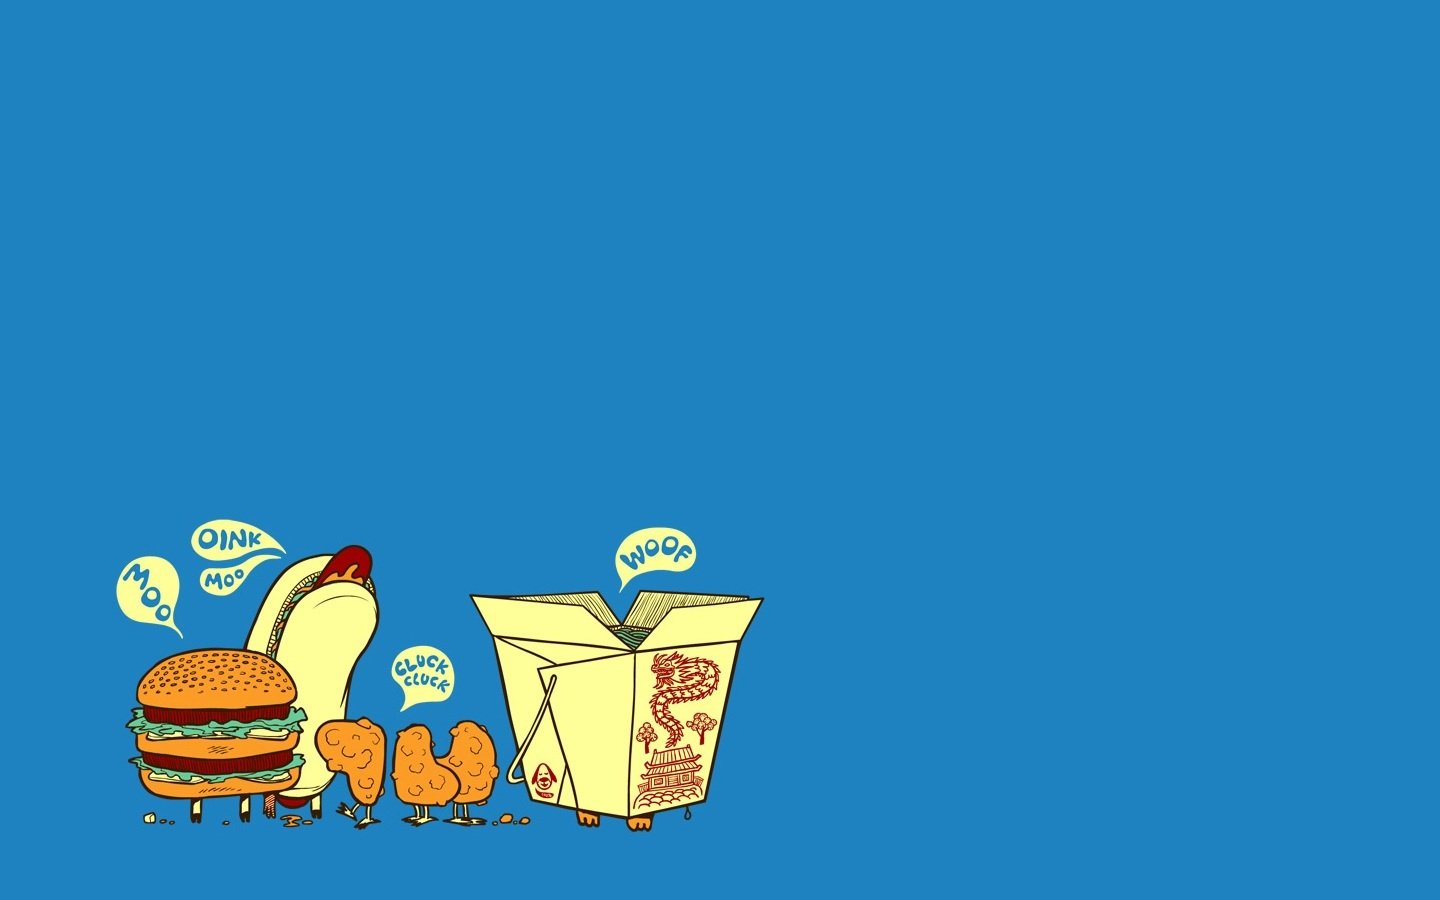 Funny Fast Food Wallpaper 1440x900